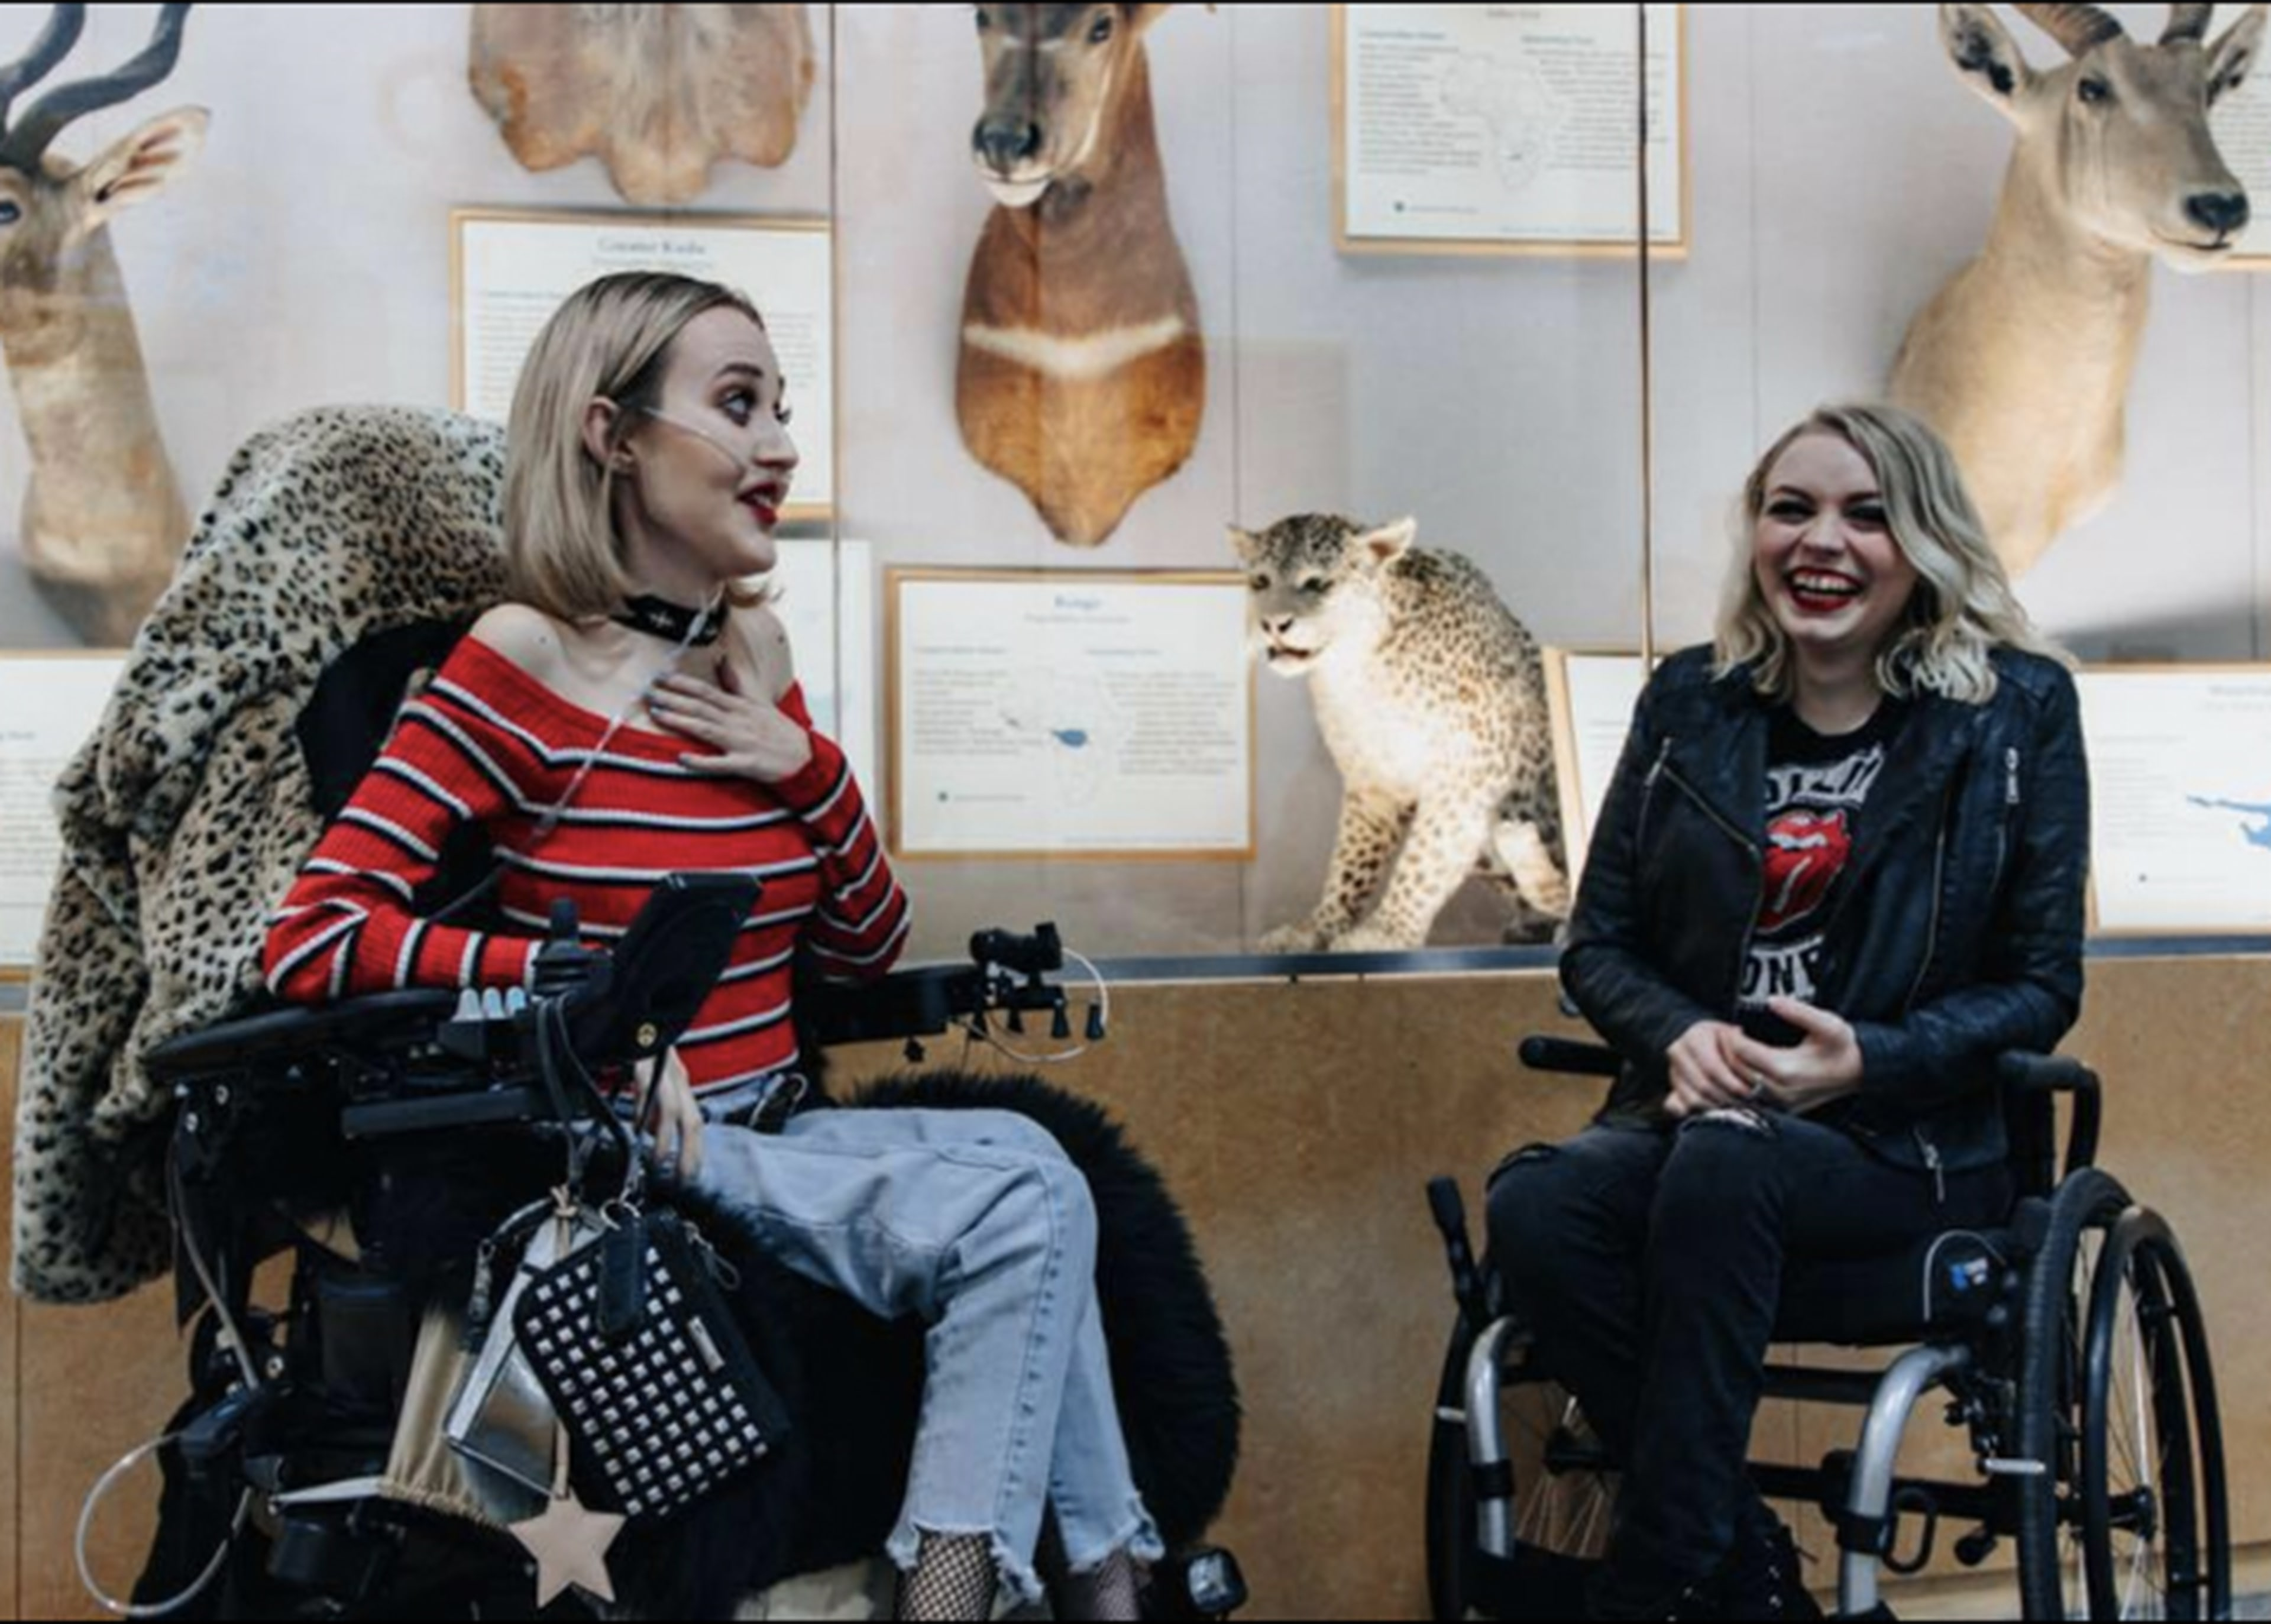 "Madi Lawson, left, met her ""SMA sister"" Lexi Mortimer, right, in eighth grade on Instagram. They bonded over their mutual love of make-up, fashion and destroying stereotypes about people with disabilities."